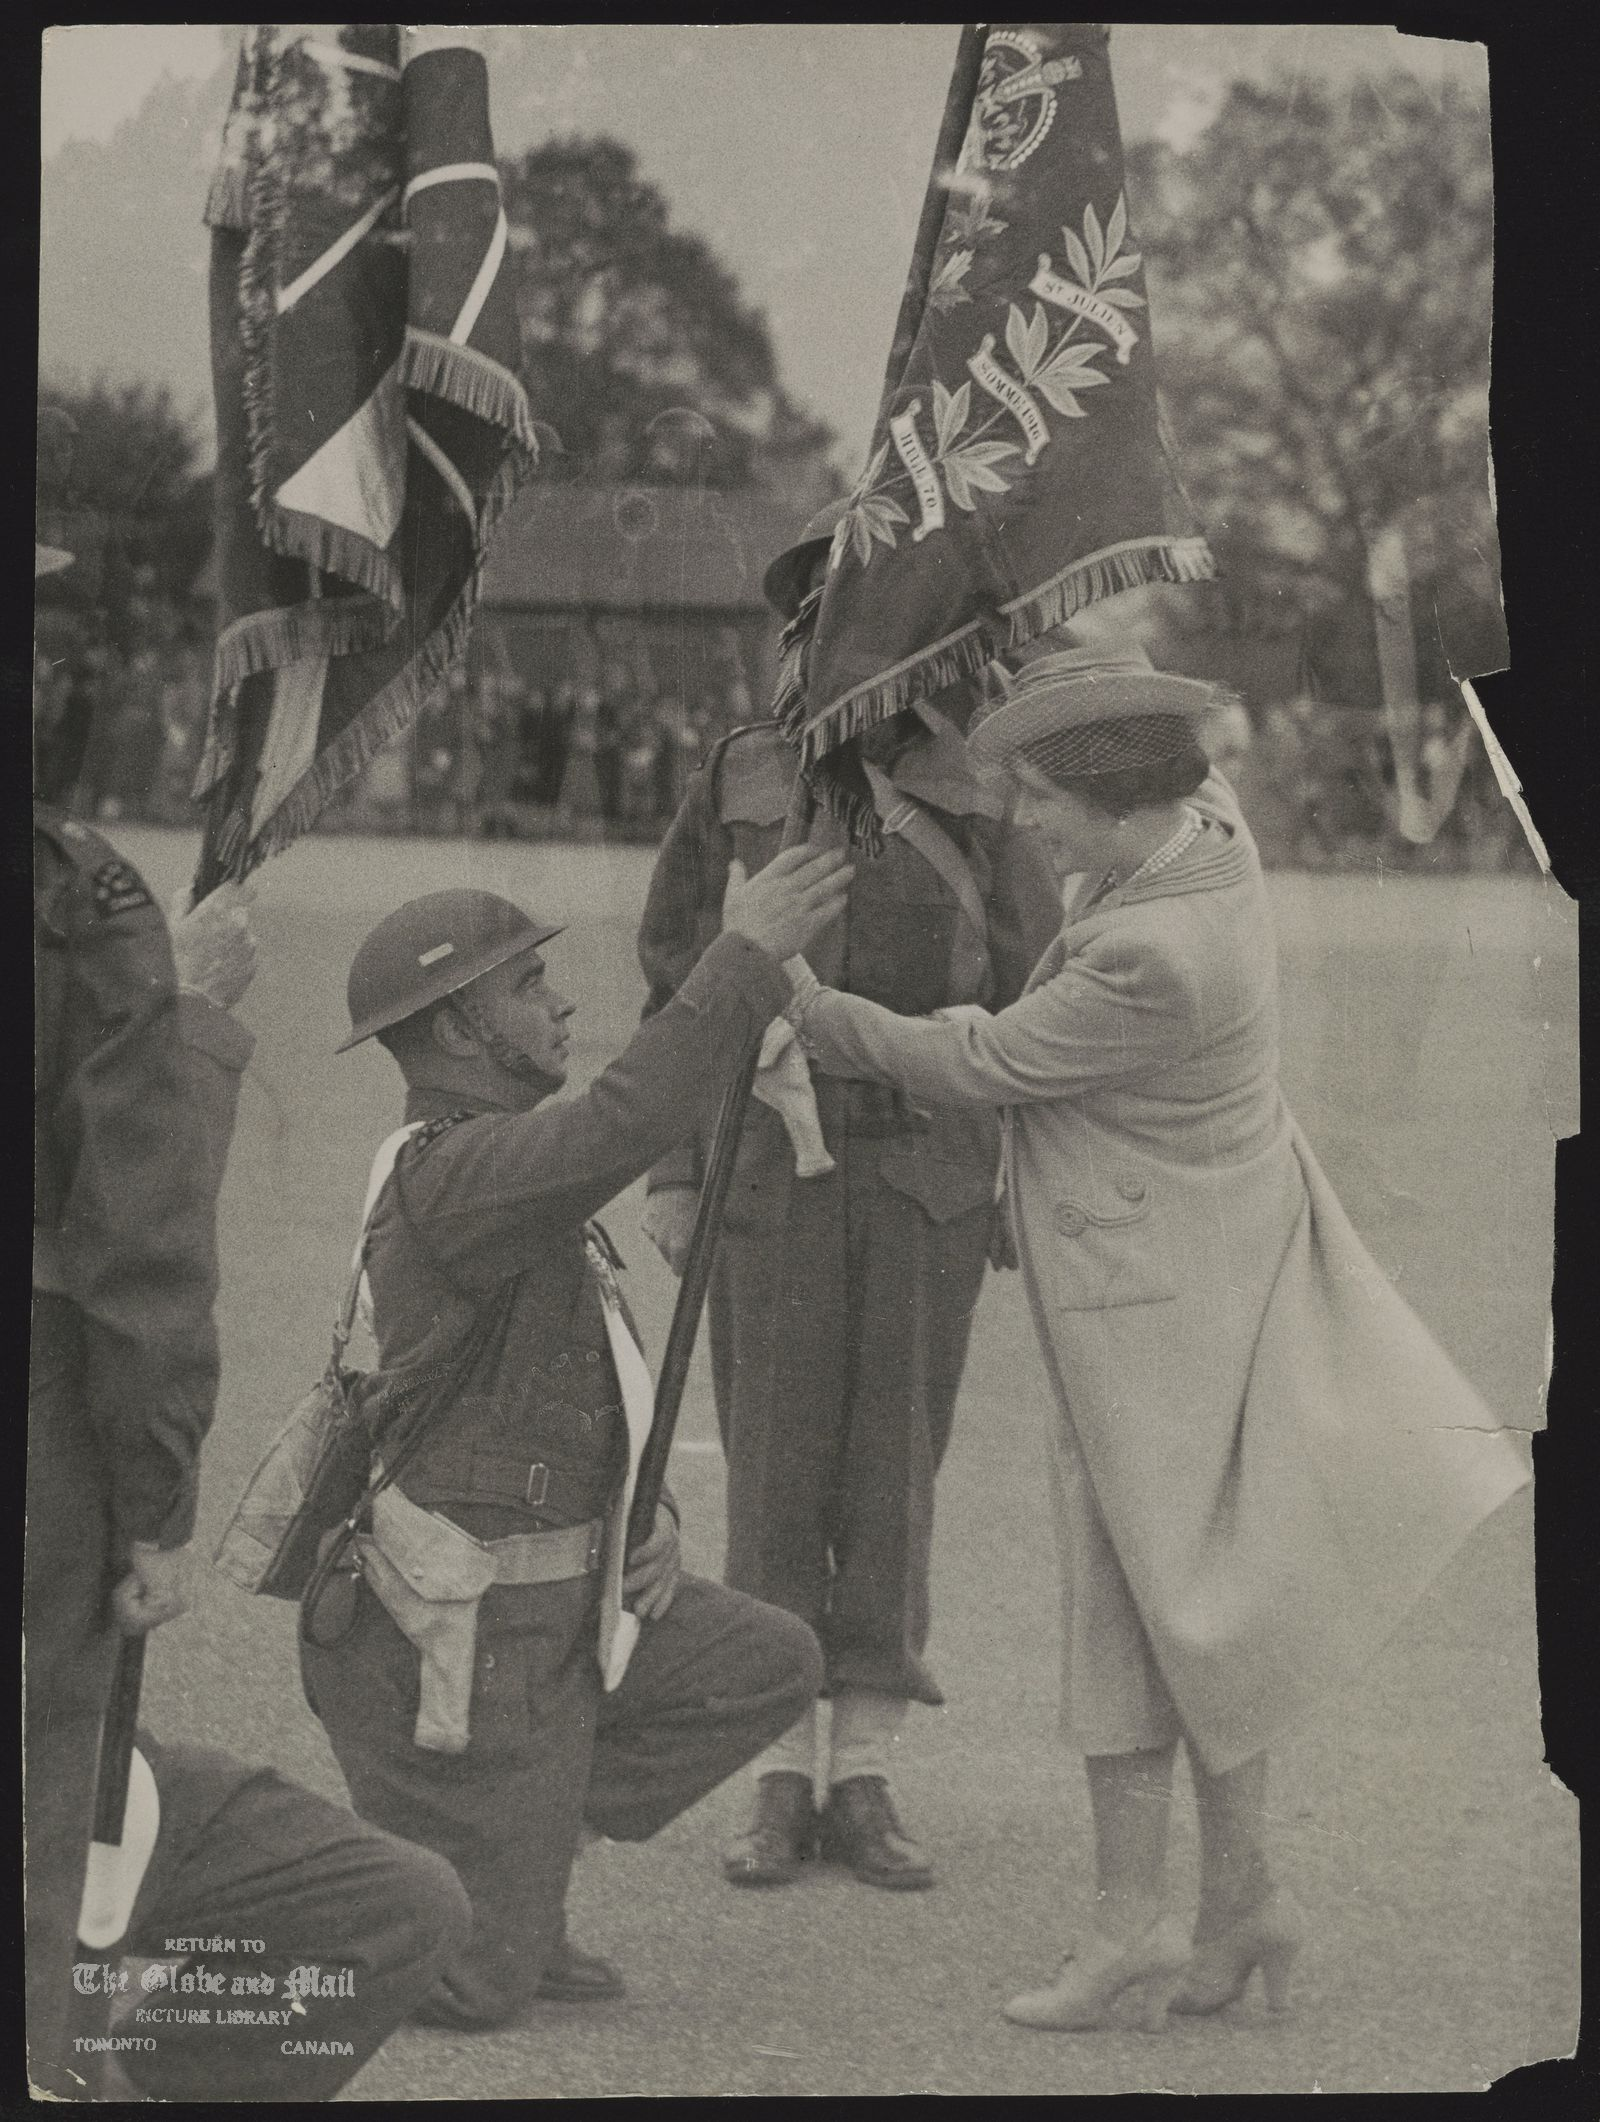 ROYAL FAMILY GREAT BRITAIN QUEEN ELIZABETH, QUEEN MOTHER PASSED BY THE CENSOR - NO. 168971 THE QUEEN PRESENTS COLOURS TO THE SASKATOON LIGHT INFANTRY, NOW IN ENGLAND. THE COLOURS WERE THE GIFT OF CITIZENS OF SASKATOON, CANADA. ASSOCIATED PRESS PHOTO SHOWS: THE QUEEN PRESENTS COLOURS. 25/10/41 [1941] PLEASE NOTE: THIS IS A ROTA PICTURE AND OTHER AGENCIES HAVE THE SAME PICTURE FOR CIRCULATION FL/AB 242101 251041S NY.AM.T.C9.C1